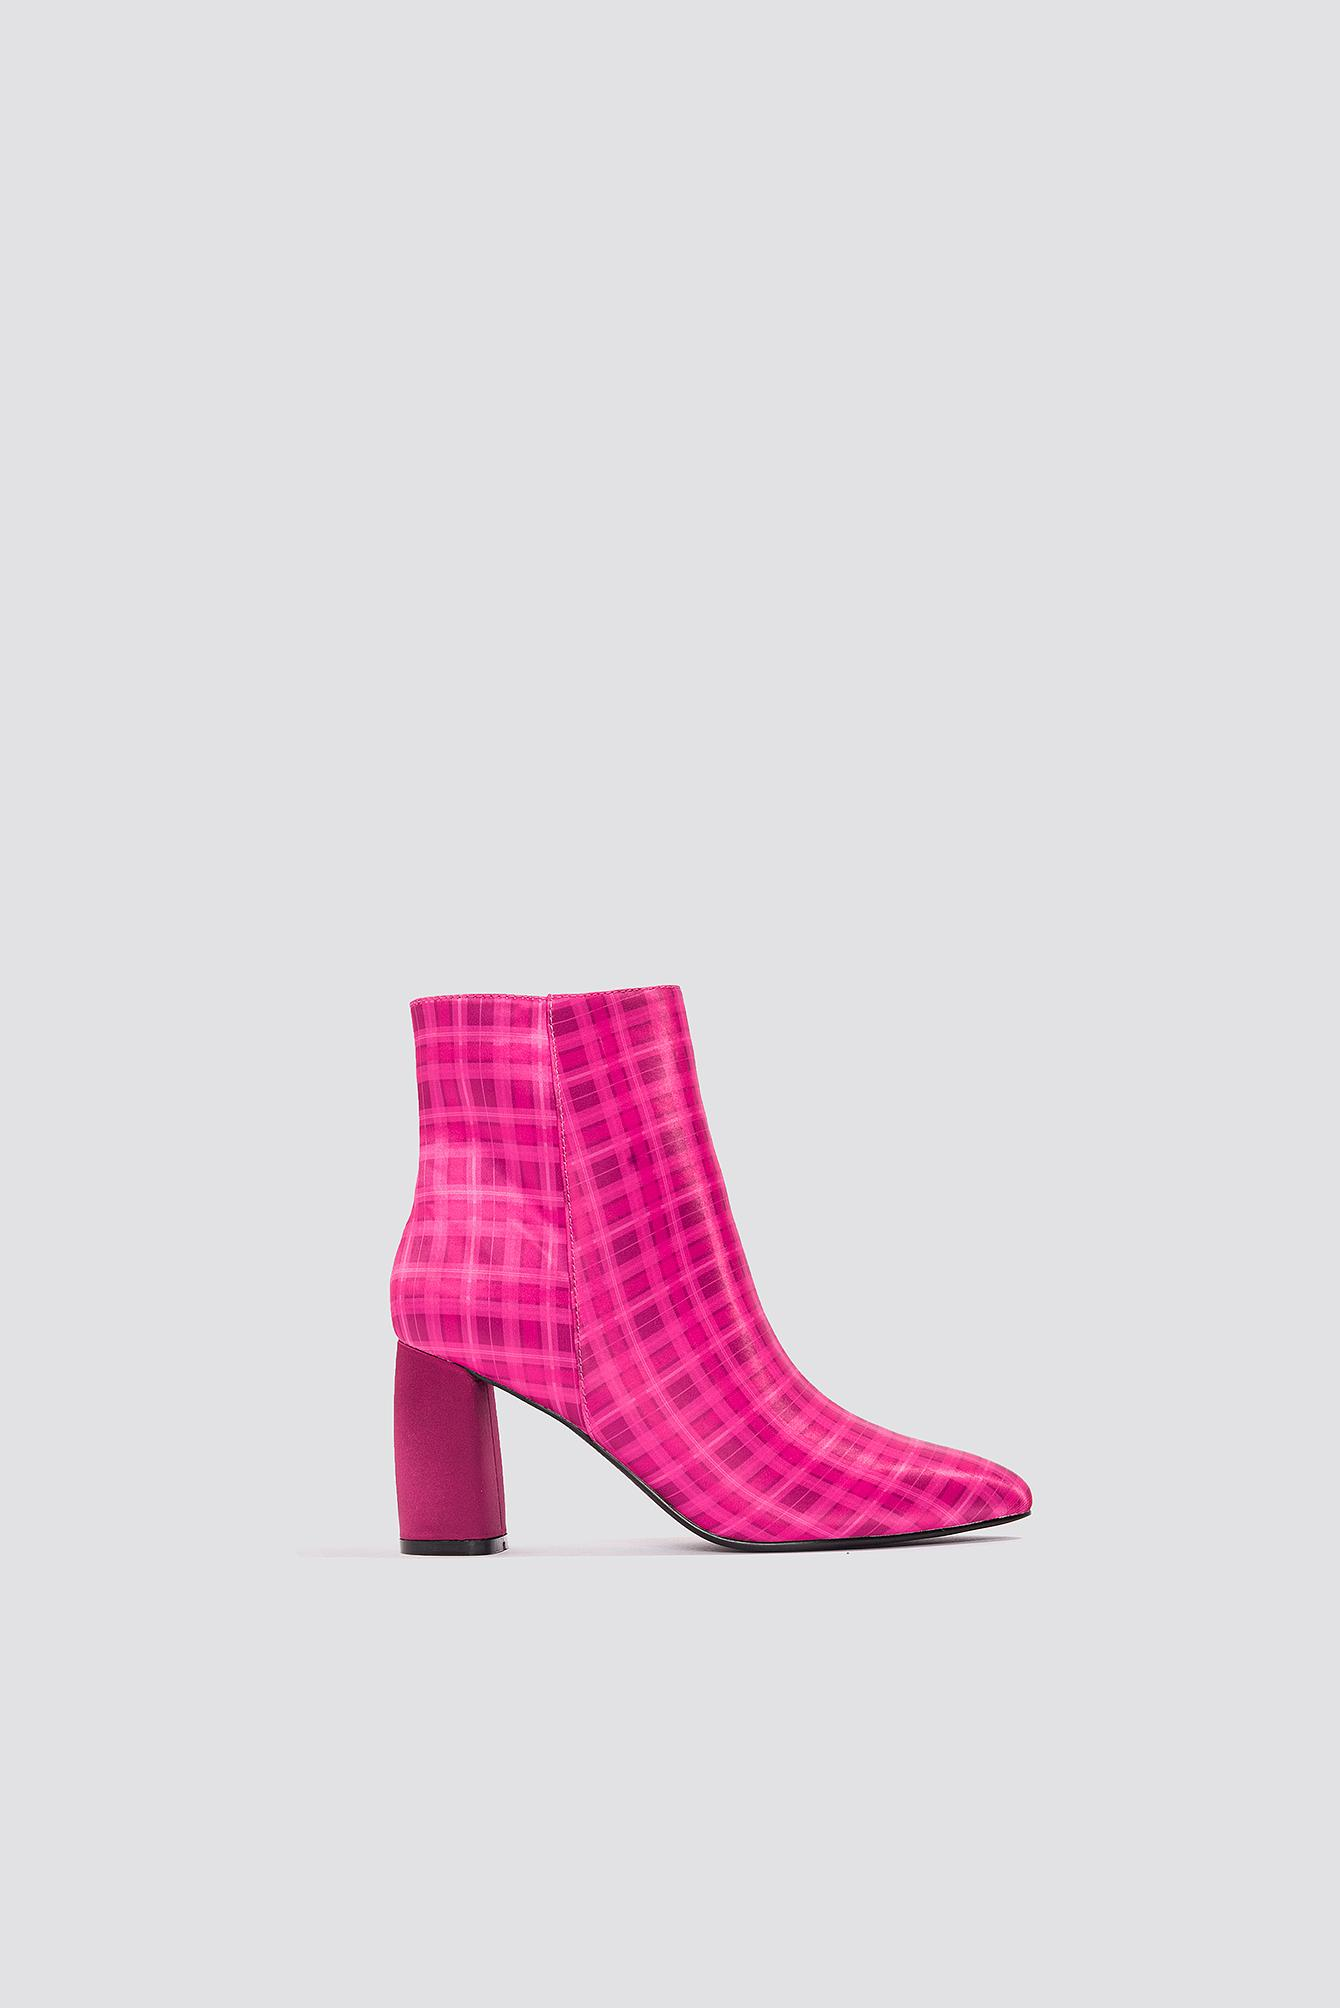 8fcc7b87d4 Na-Kd Printed Satin Mid Heel Boots - Pink, Multicolor In Pink,Multicolor